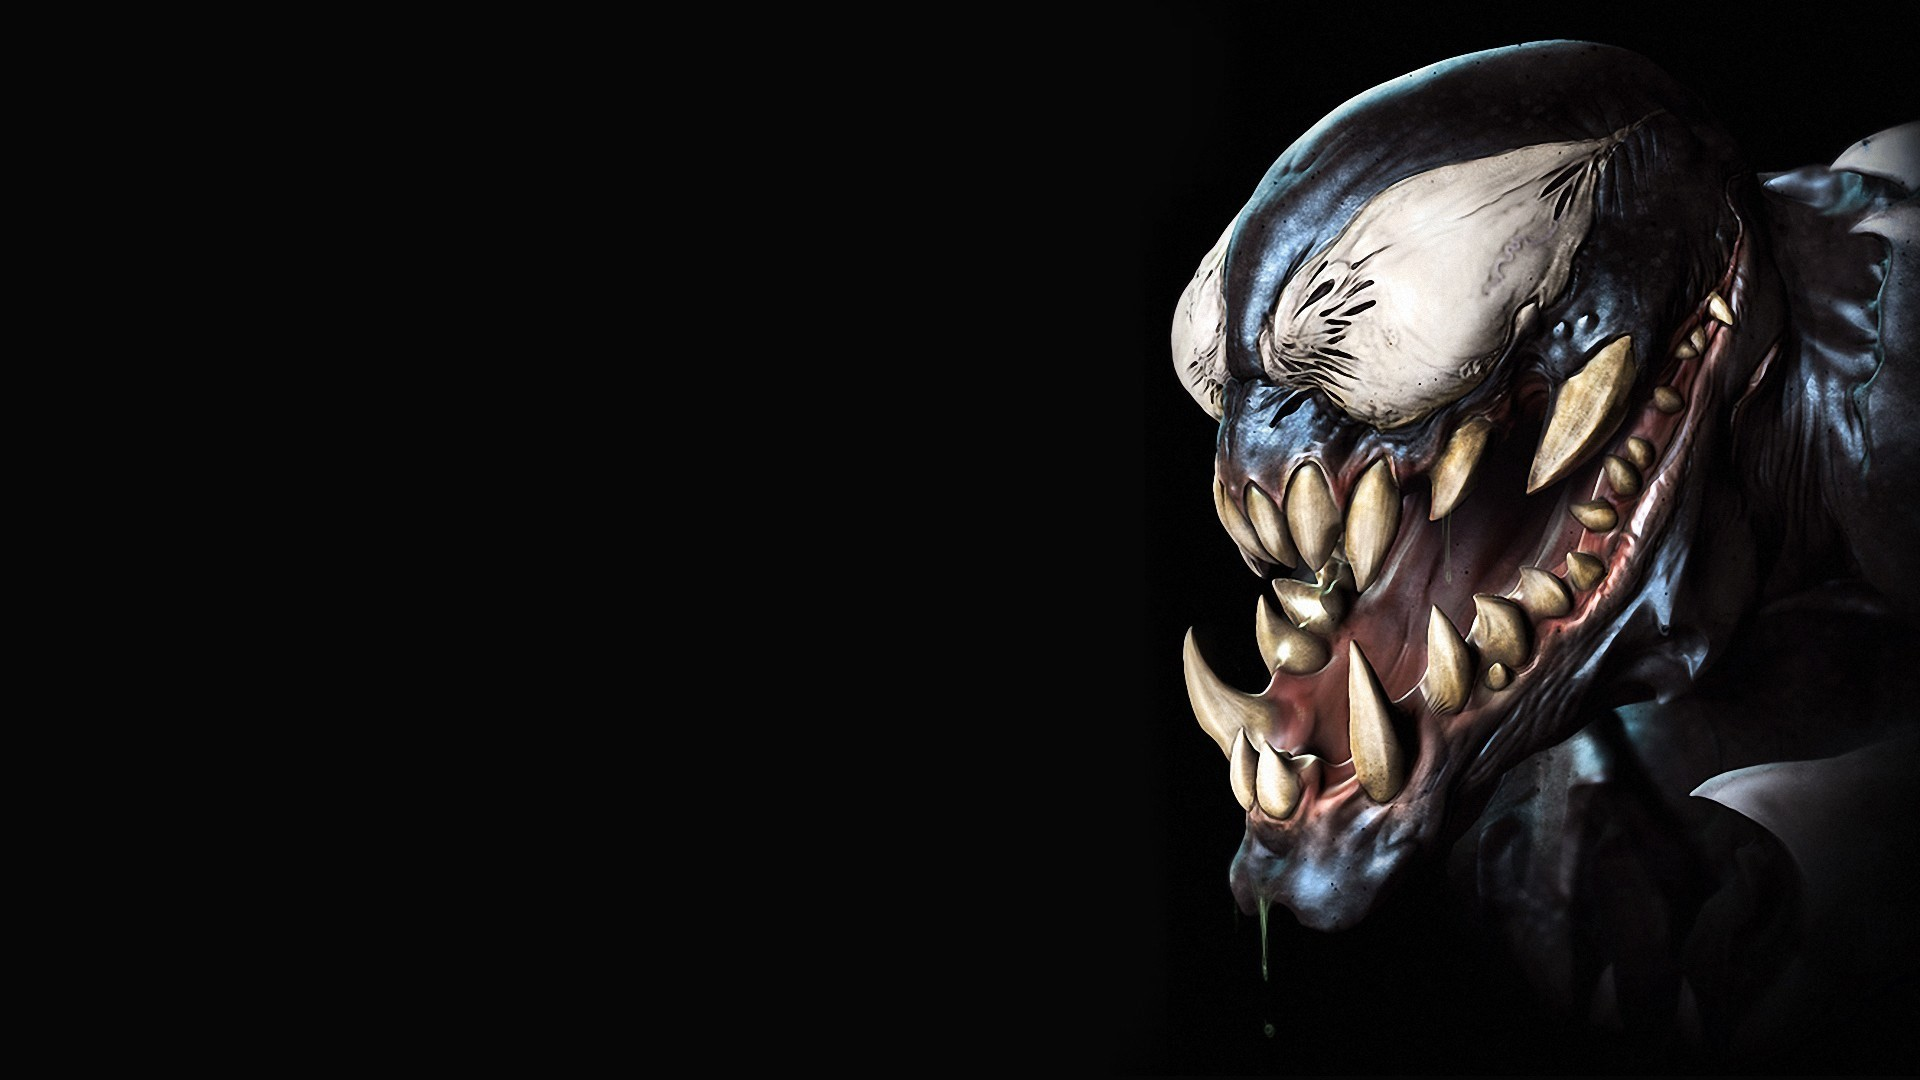 1920x1080 anti-venom wallpaper hd